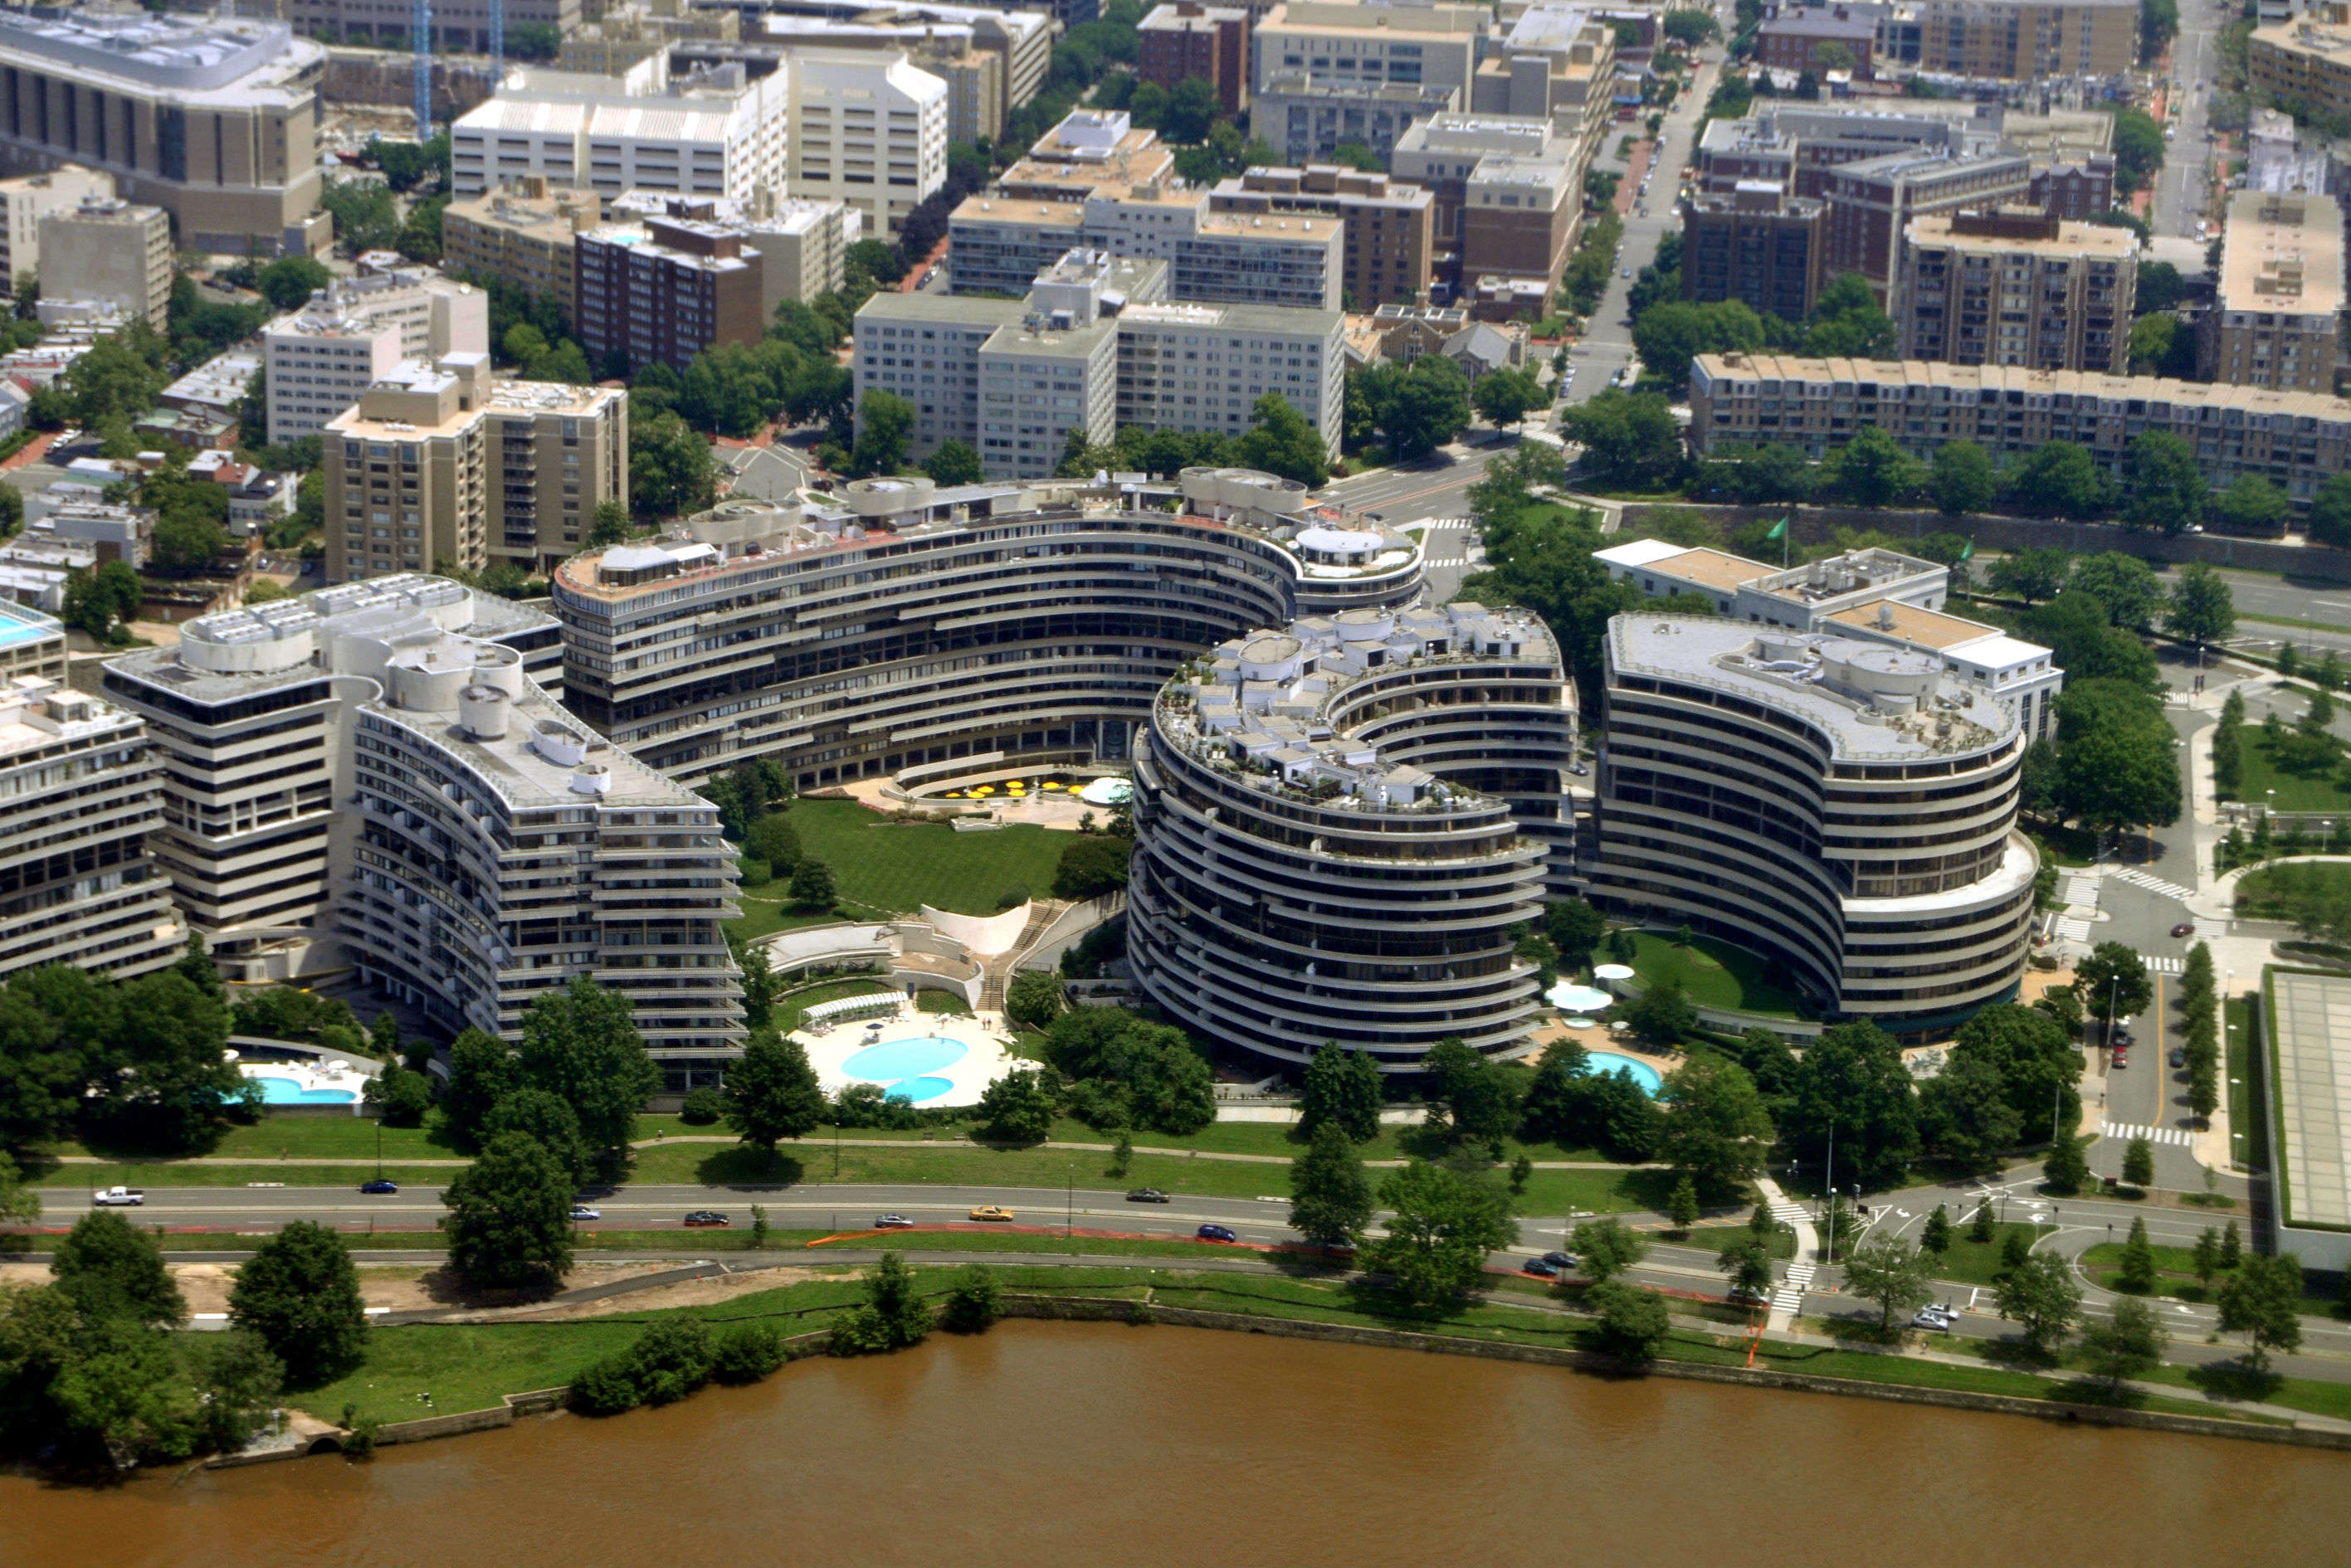 Break into the whiskey safe of the Watergate Hotel and celebrate a historic scandal